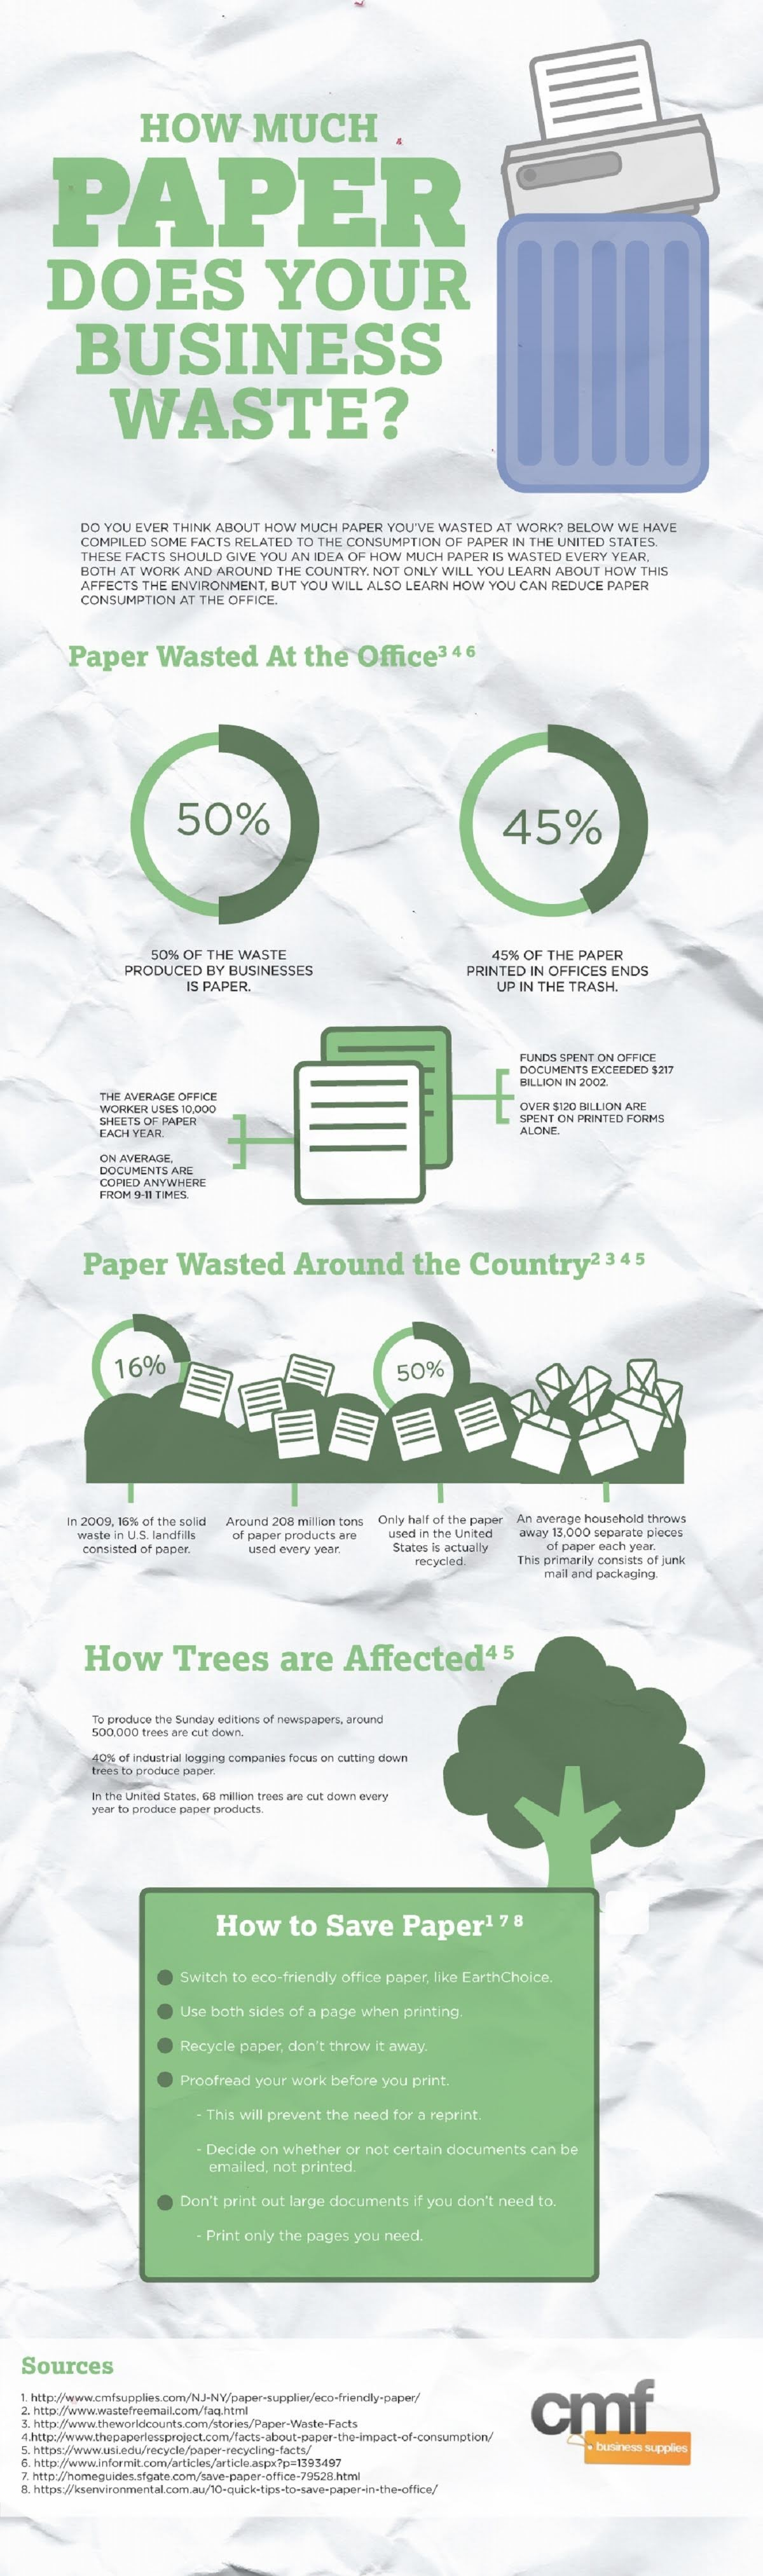 how-much-paper-does-your-business-waste-infographic